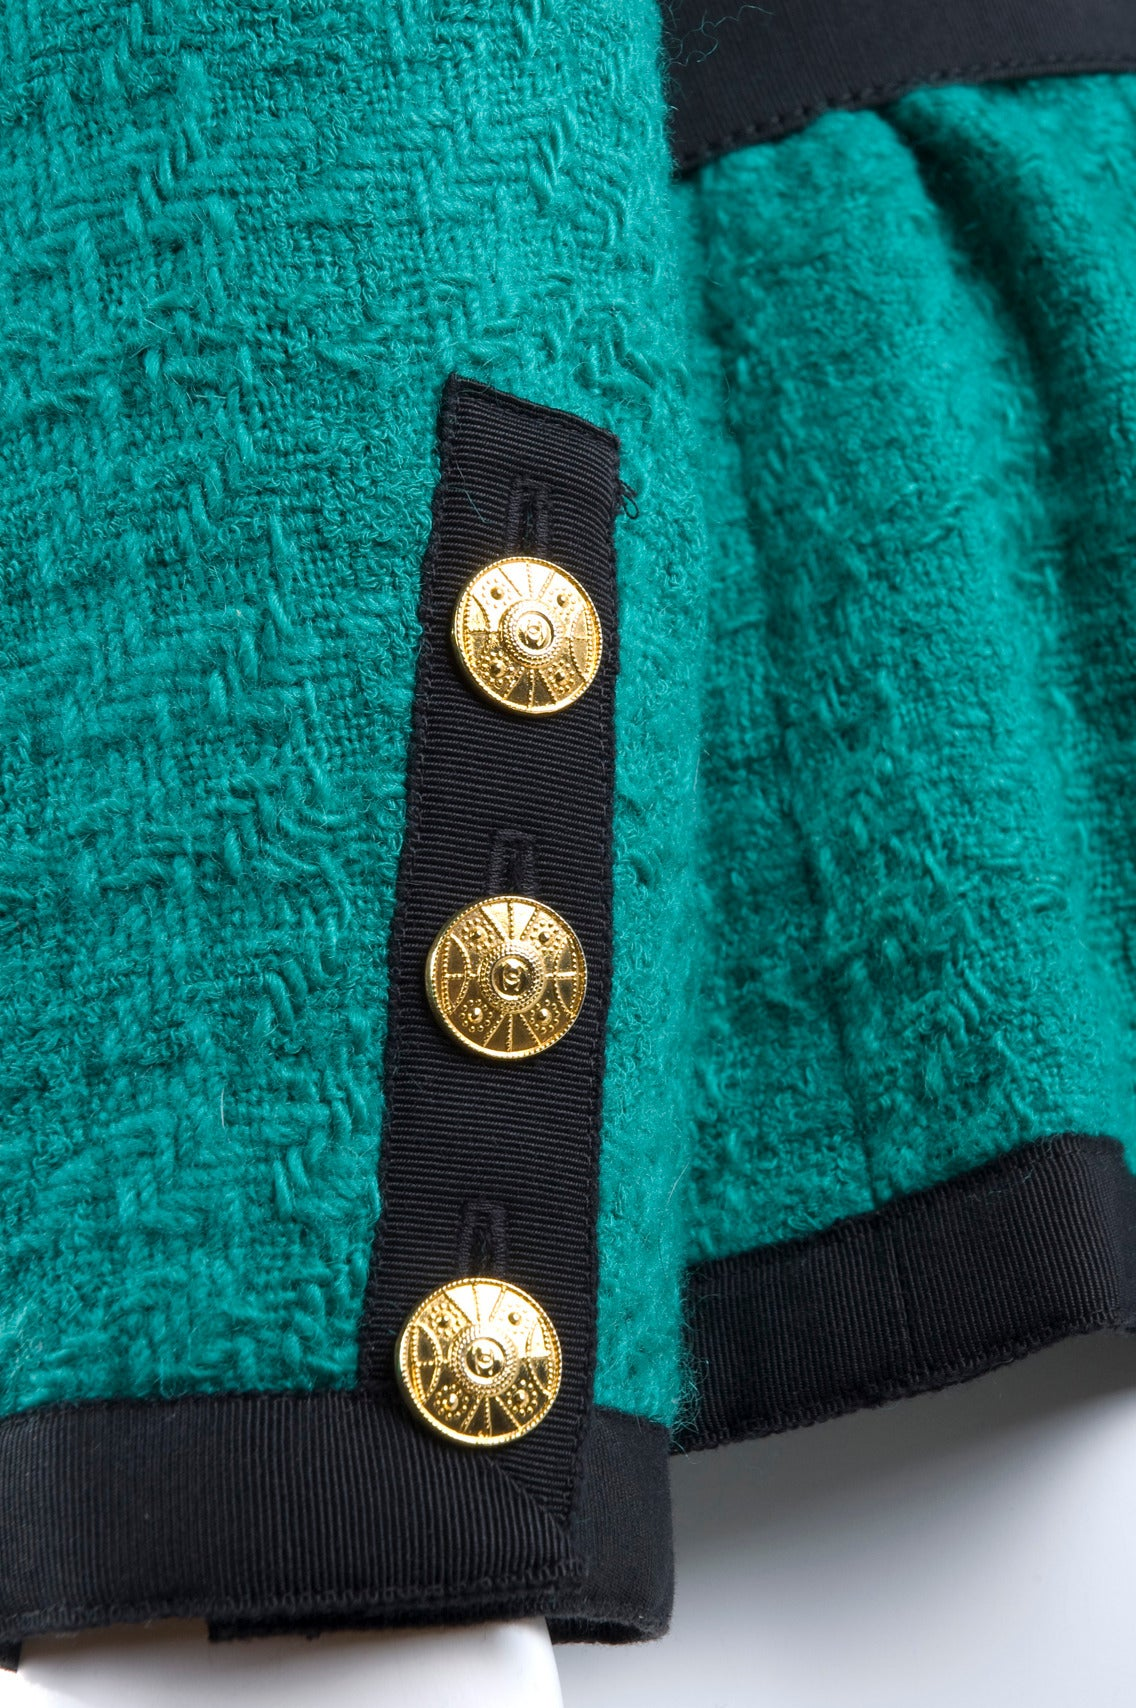 Chanel Jacket with Belt For Sale 3